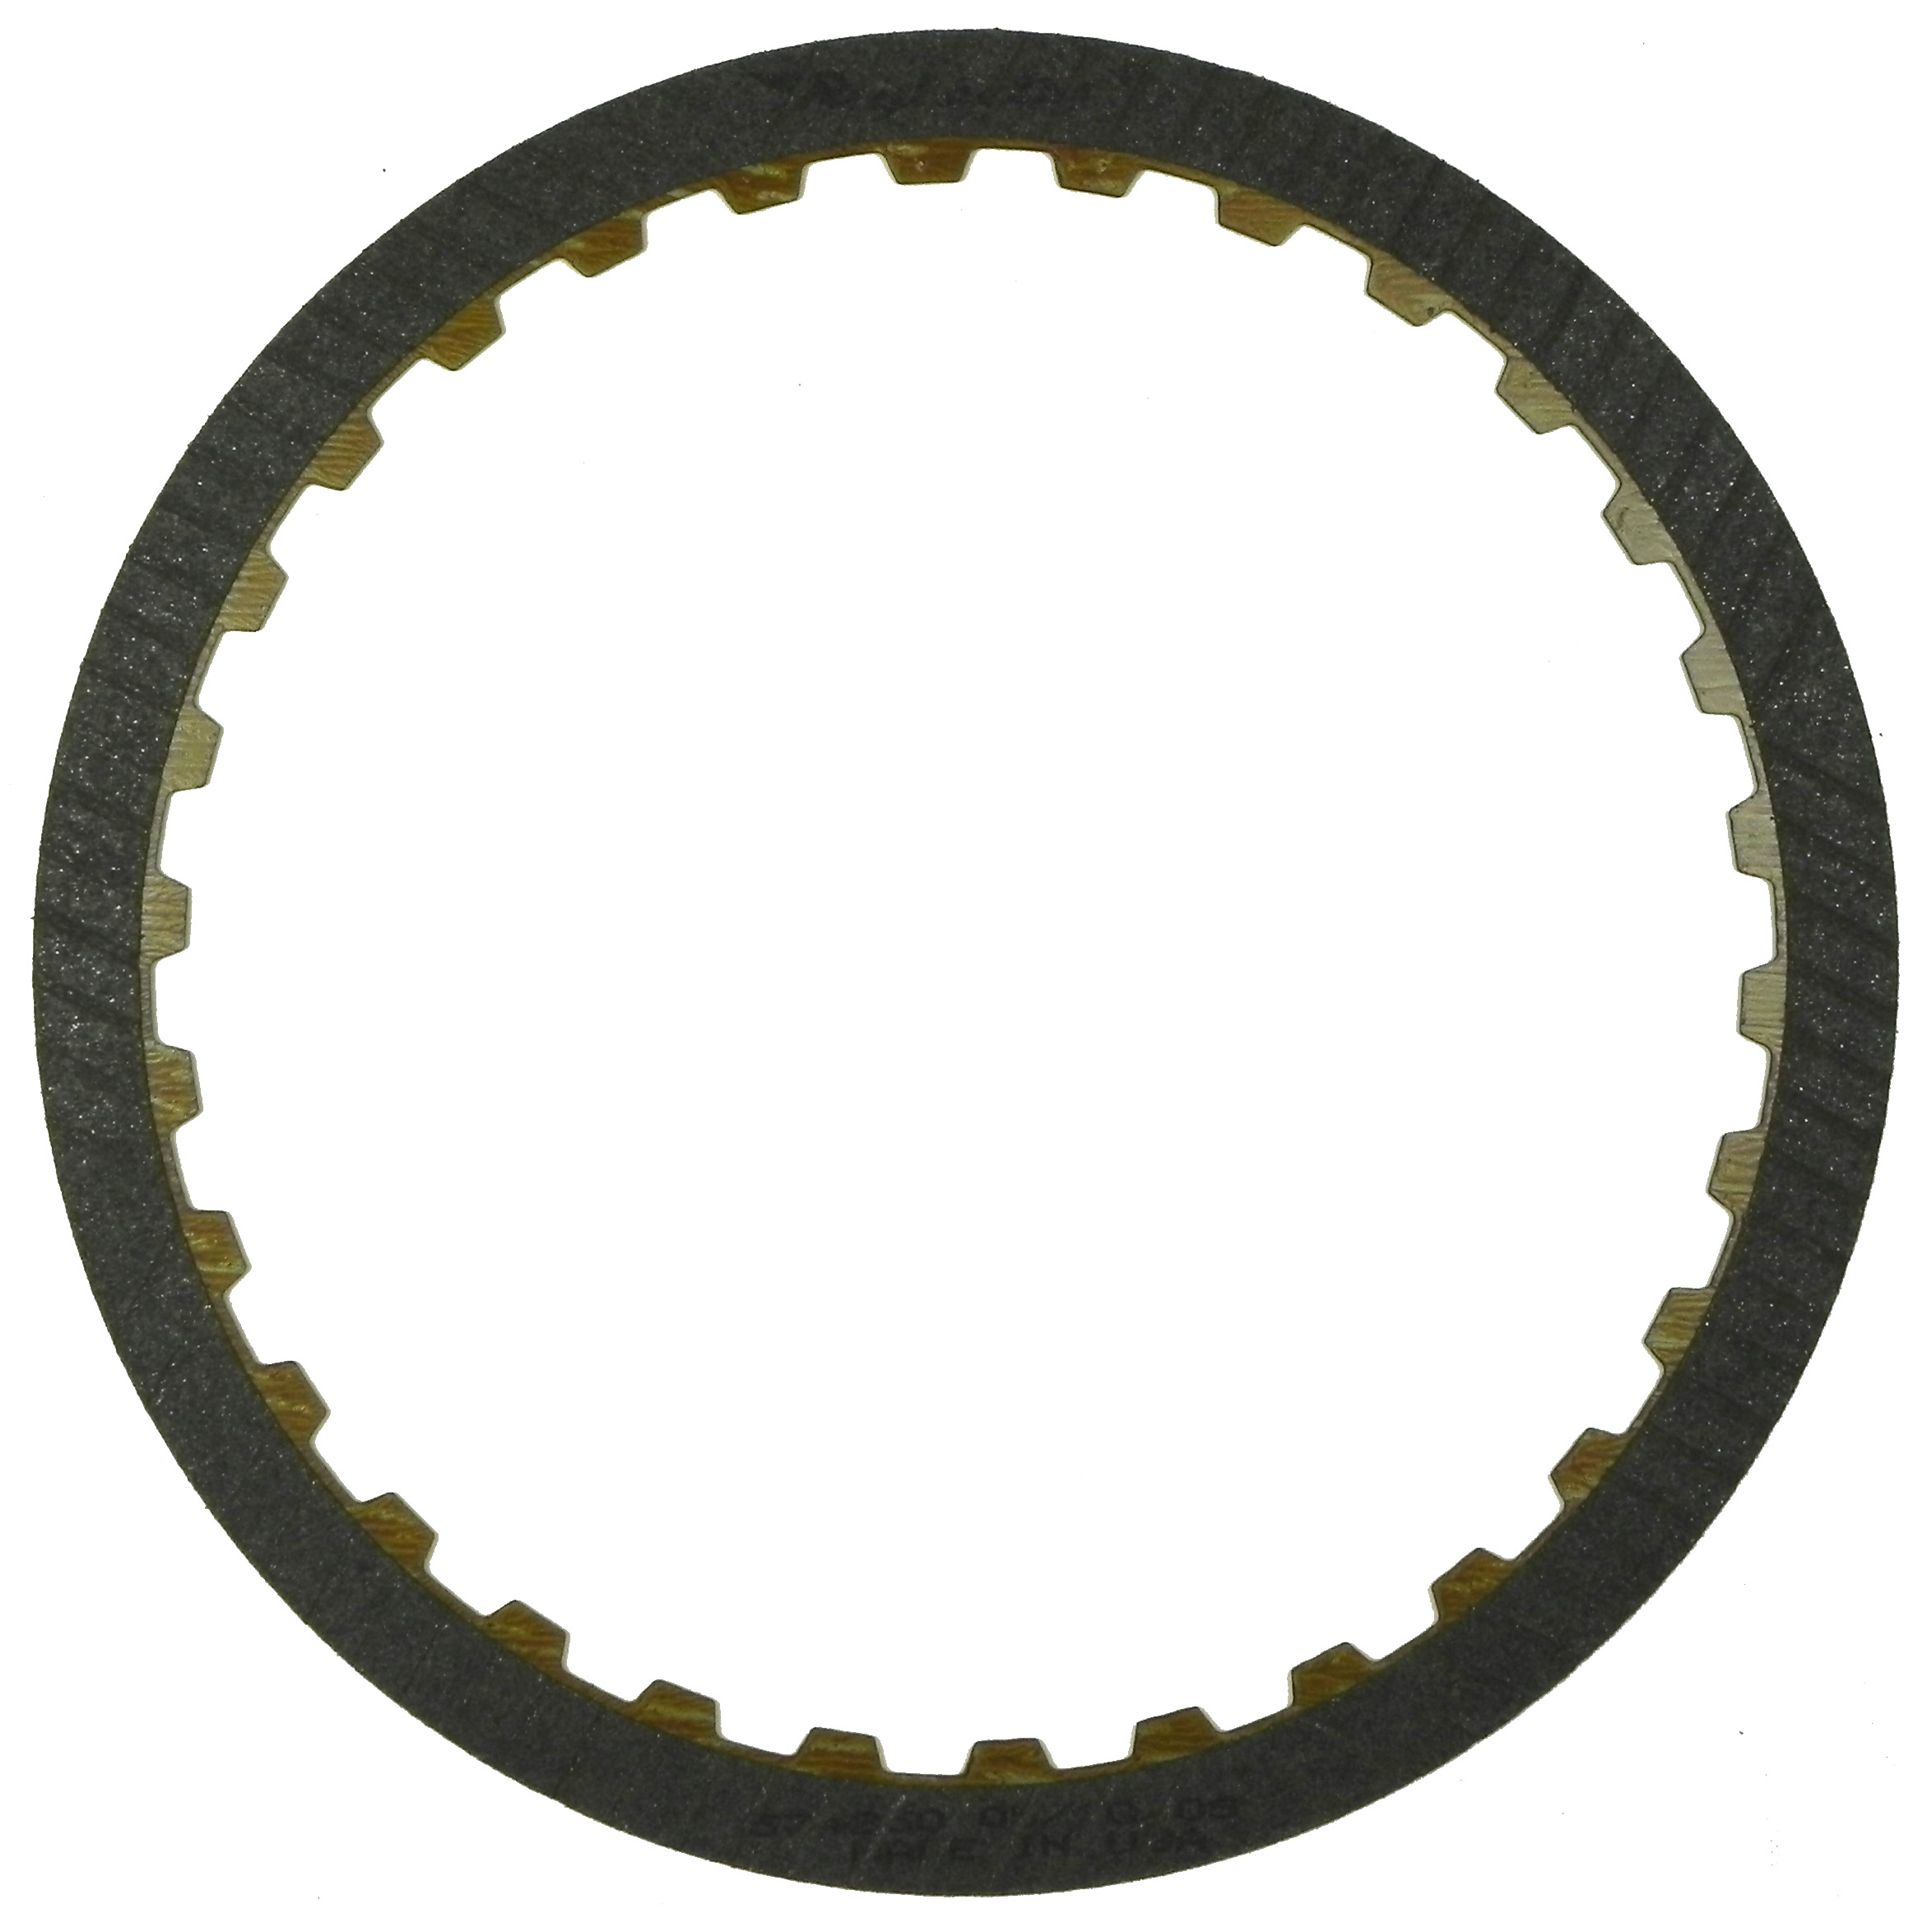 R574250 | 1995-1999 Friction Clutch Plate High Energy B, E Pack High Energy